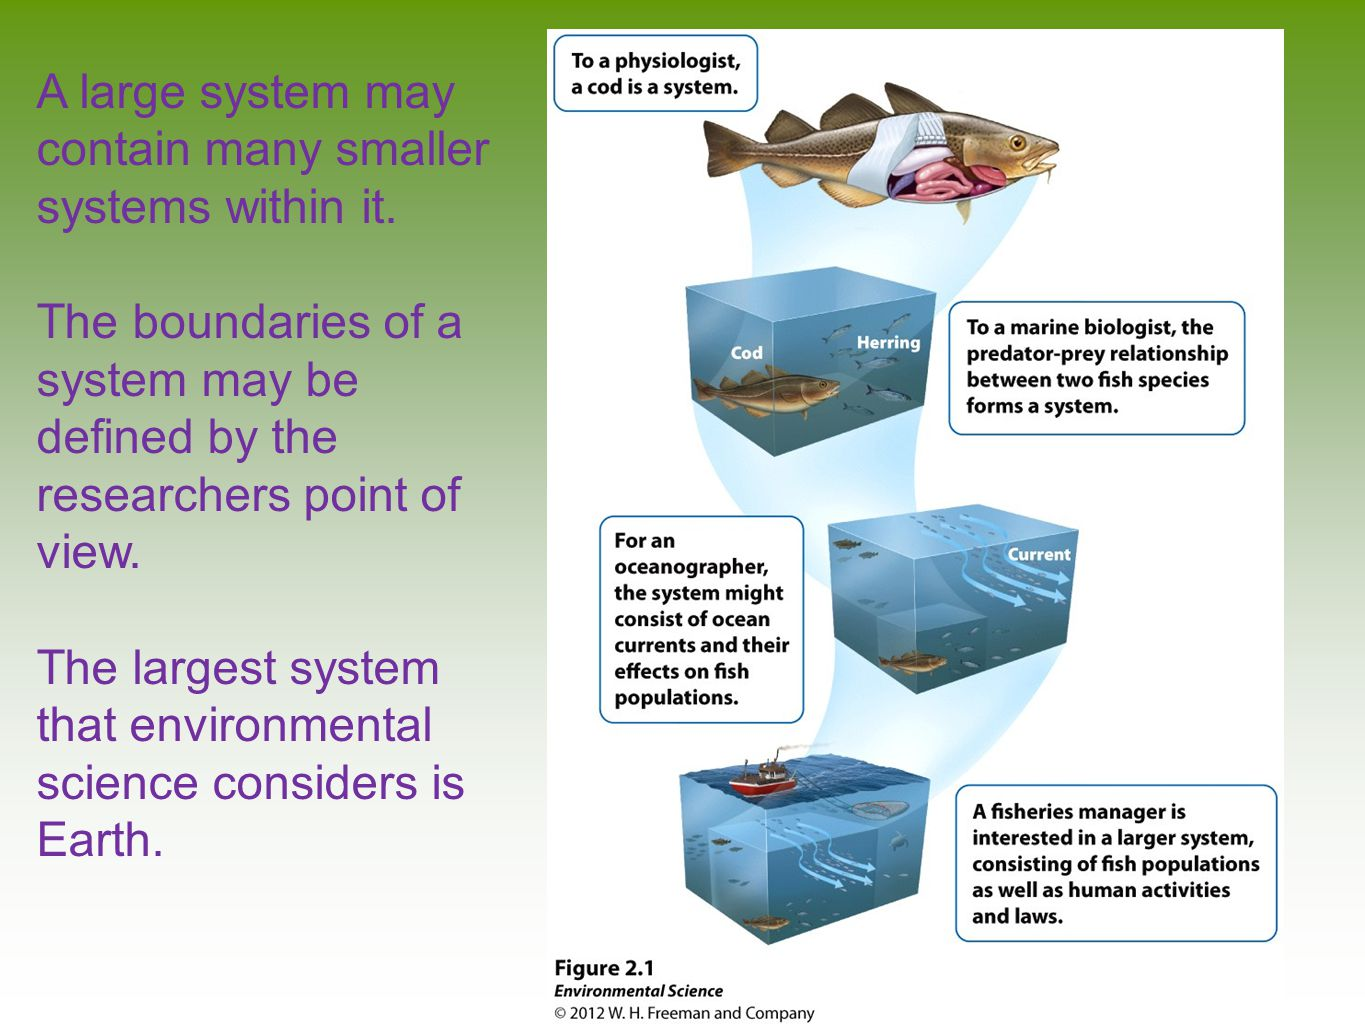 A large system may contain many smaller systems within it.